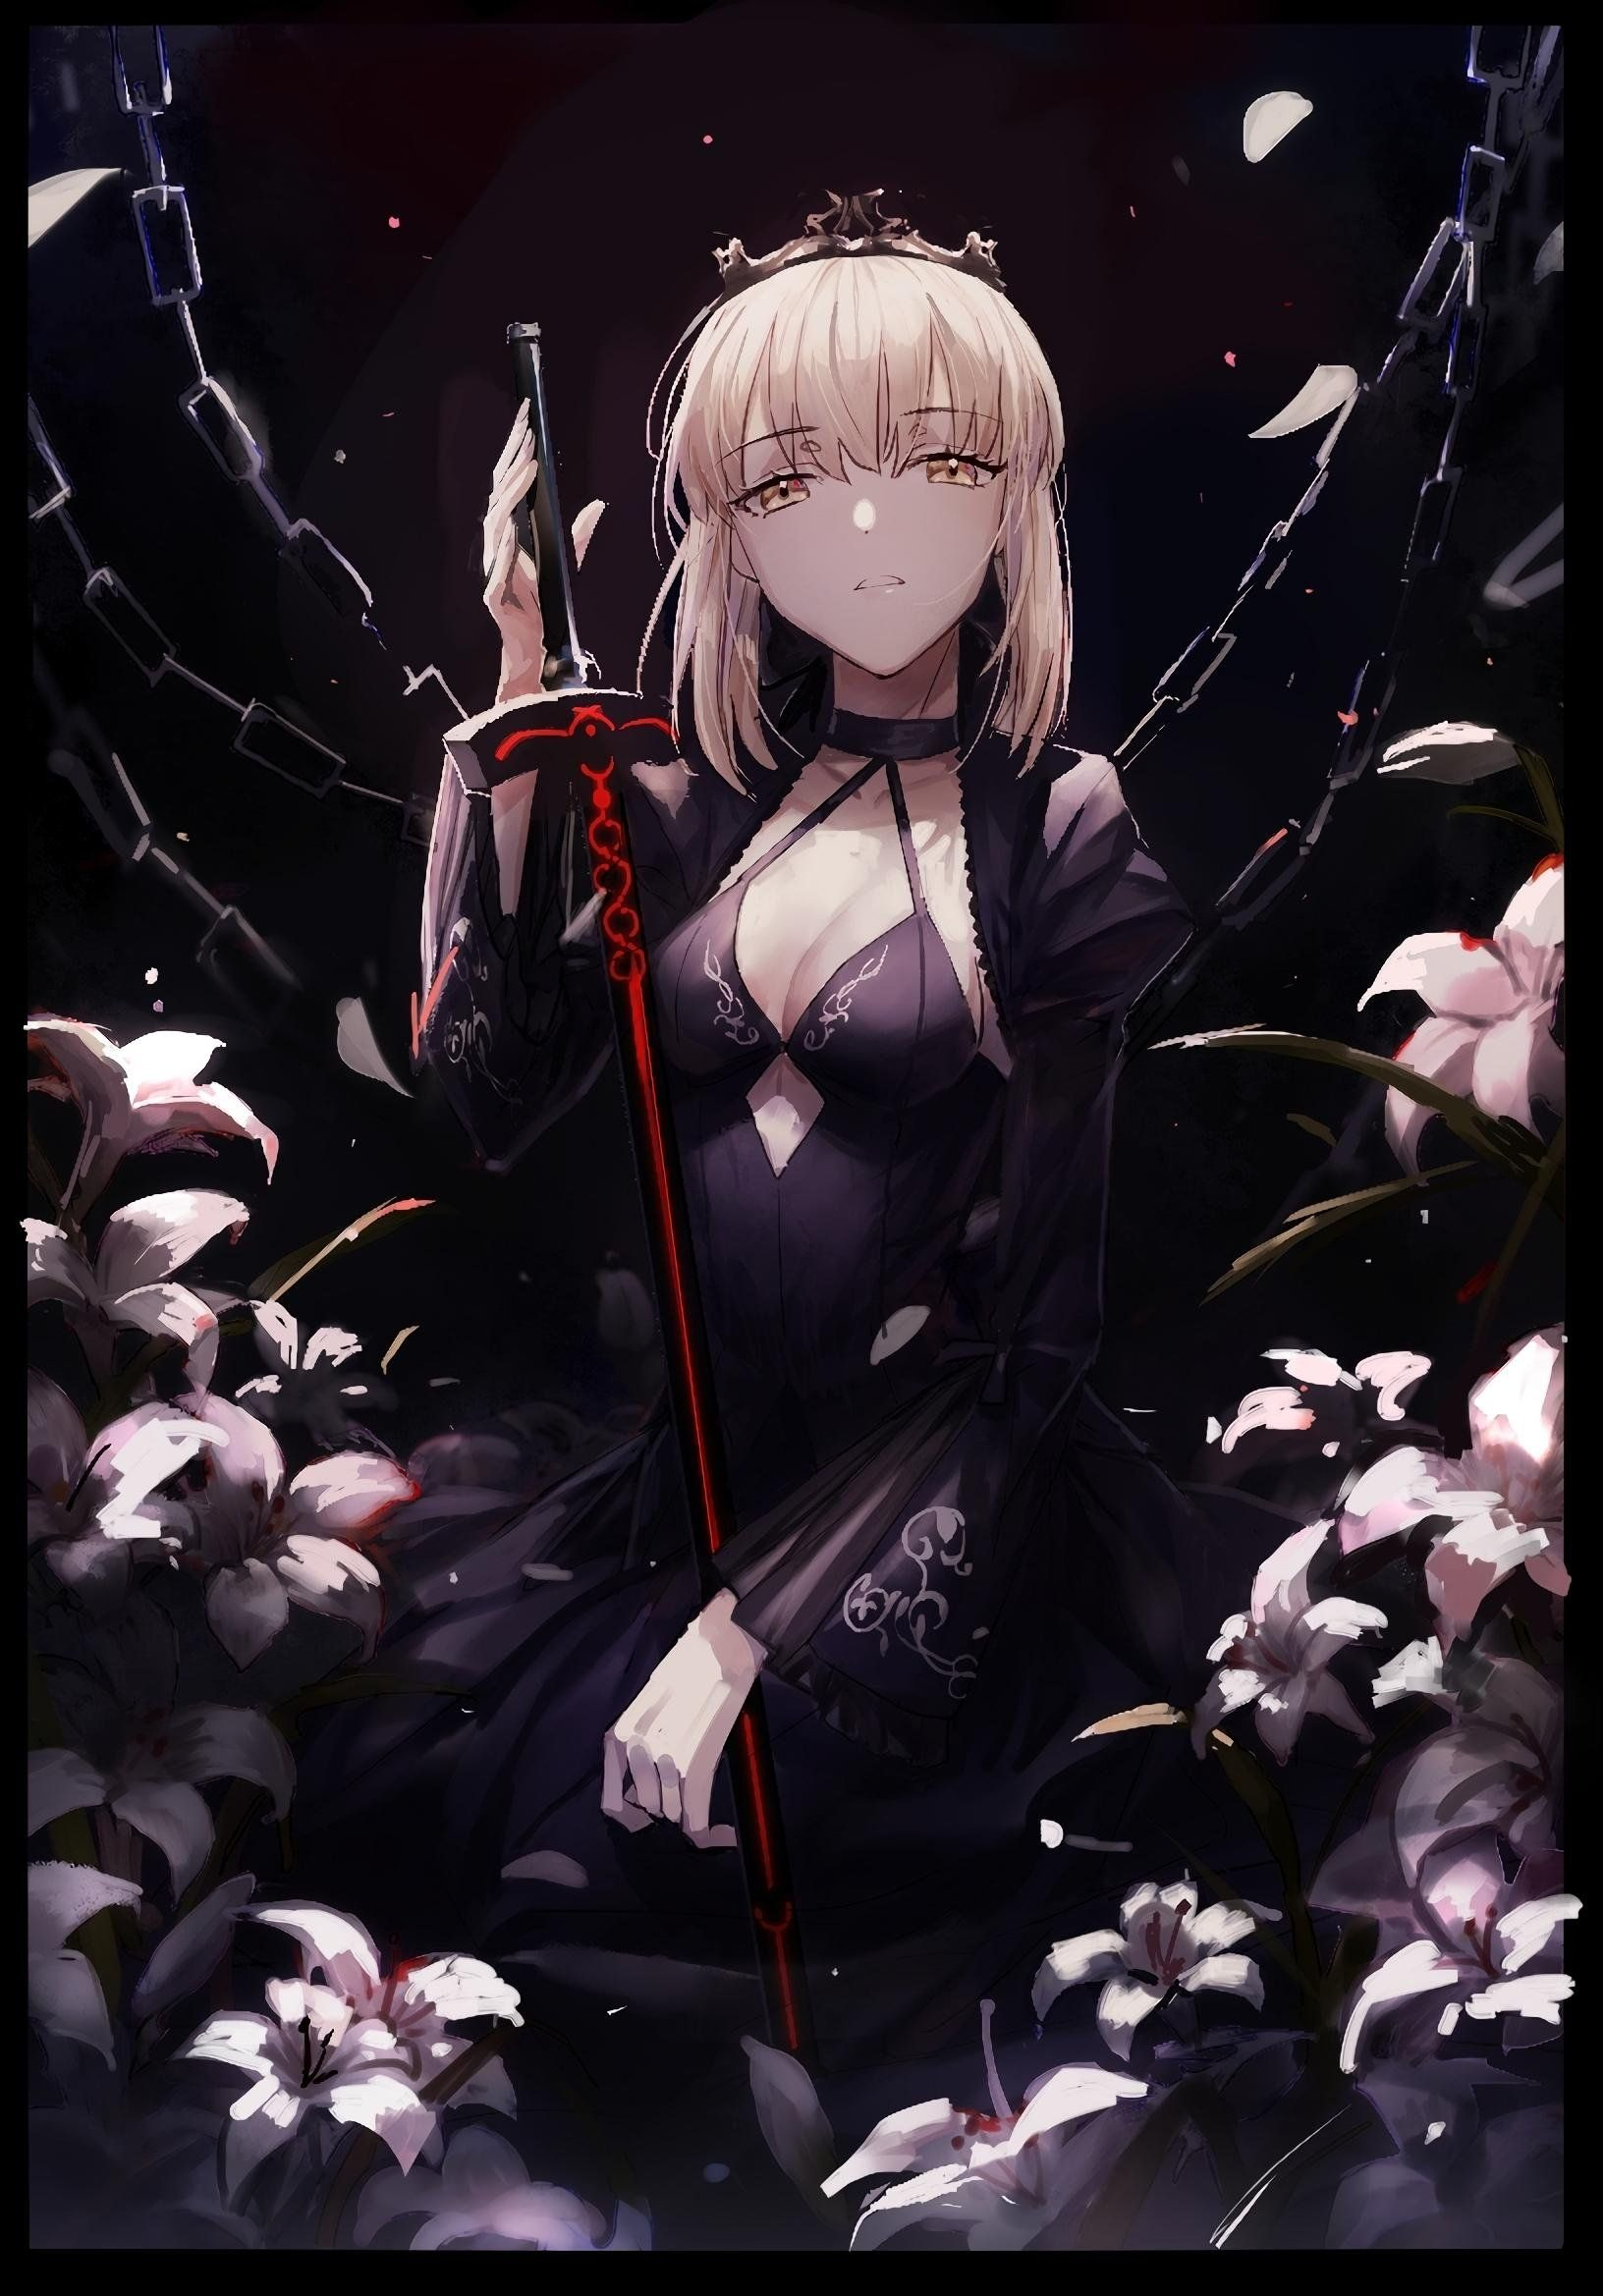 Saber Alter Saber Fate anime series, Fate stay night